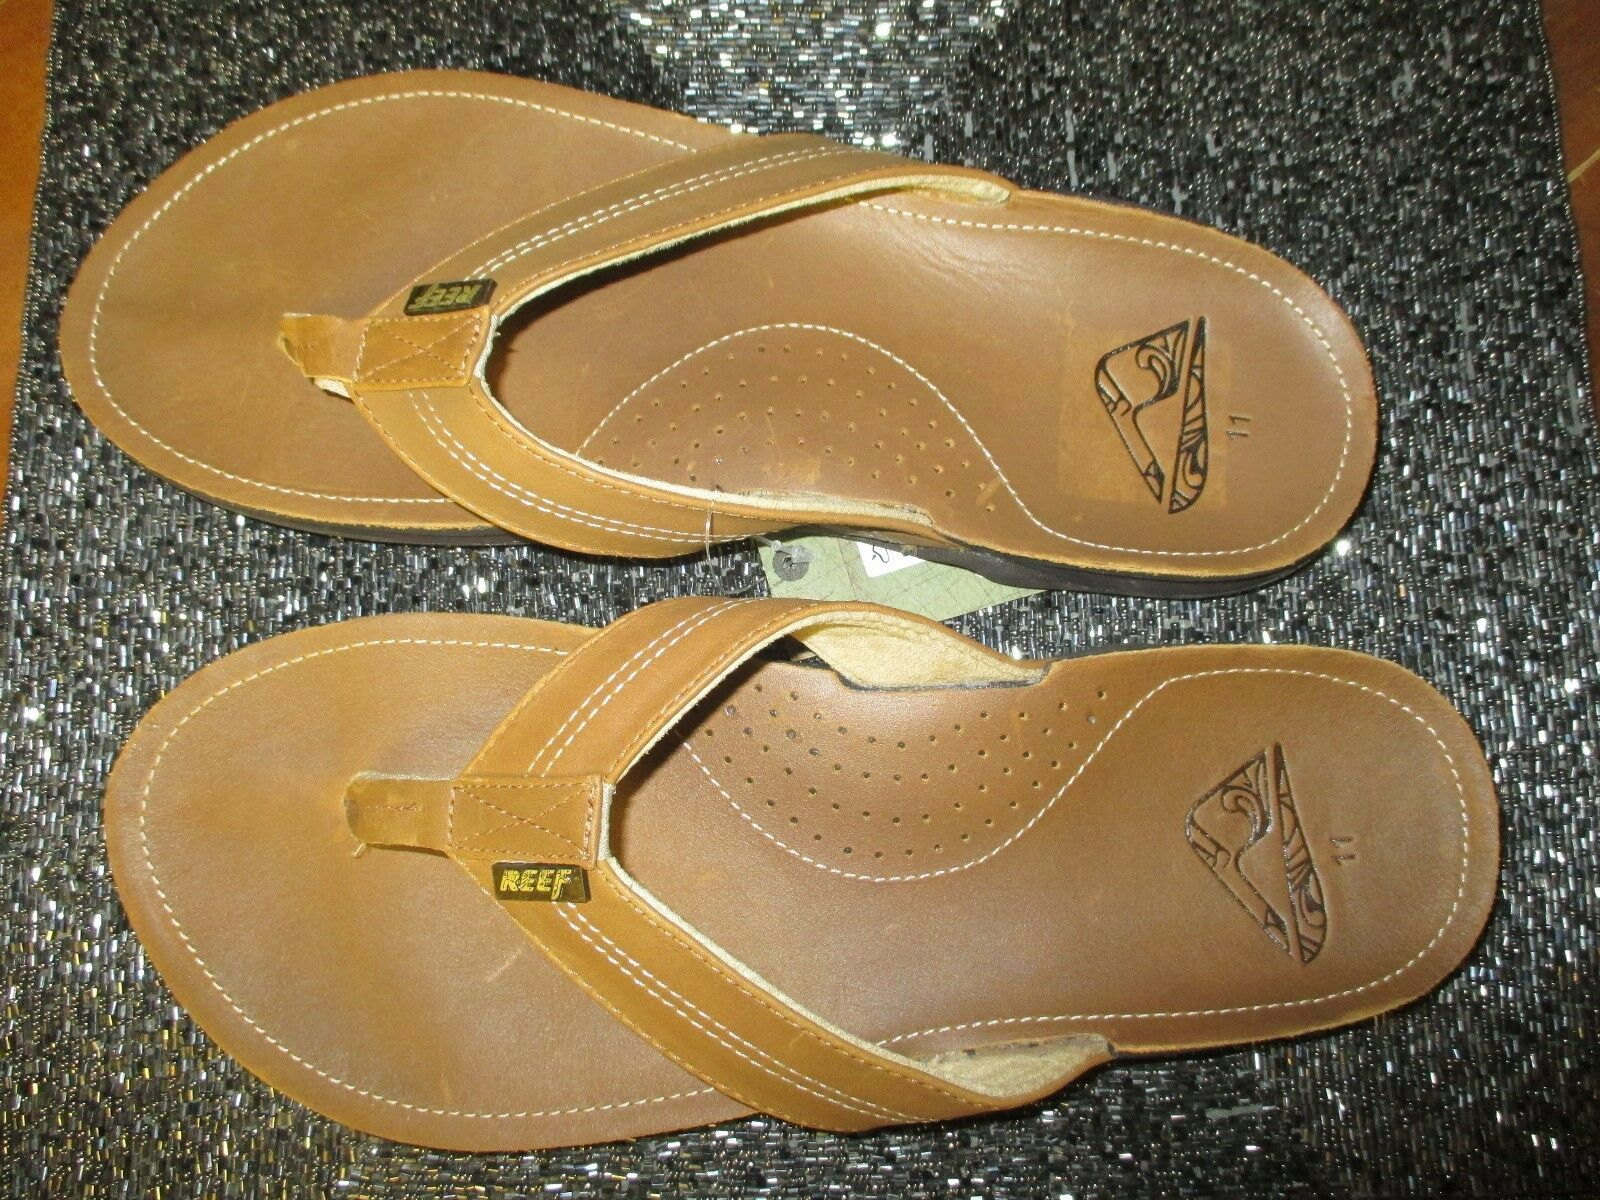 NEW REEF SANDALS 7.5 8 Mens J-Bay LEATHER FLIP FLOPS SHOES Tan Pecan